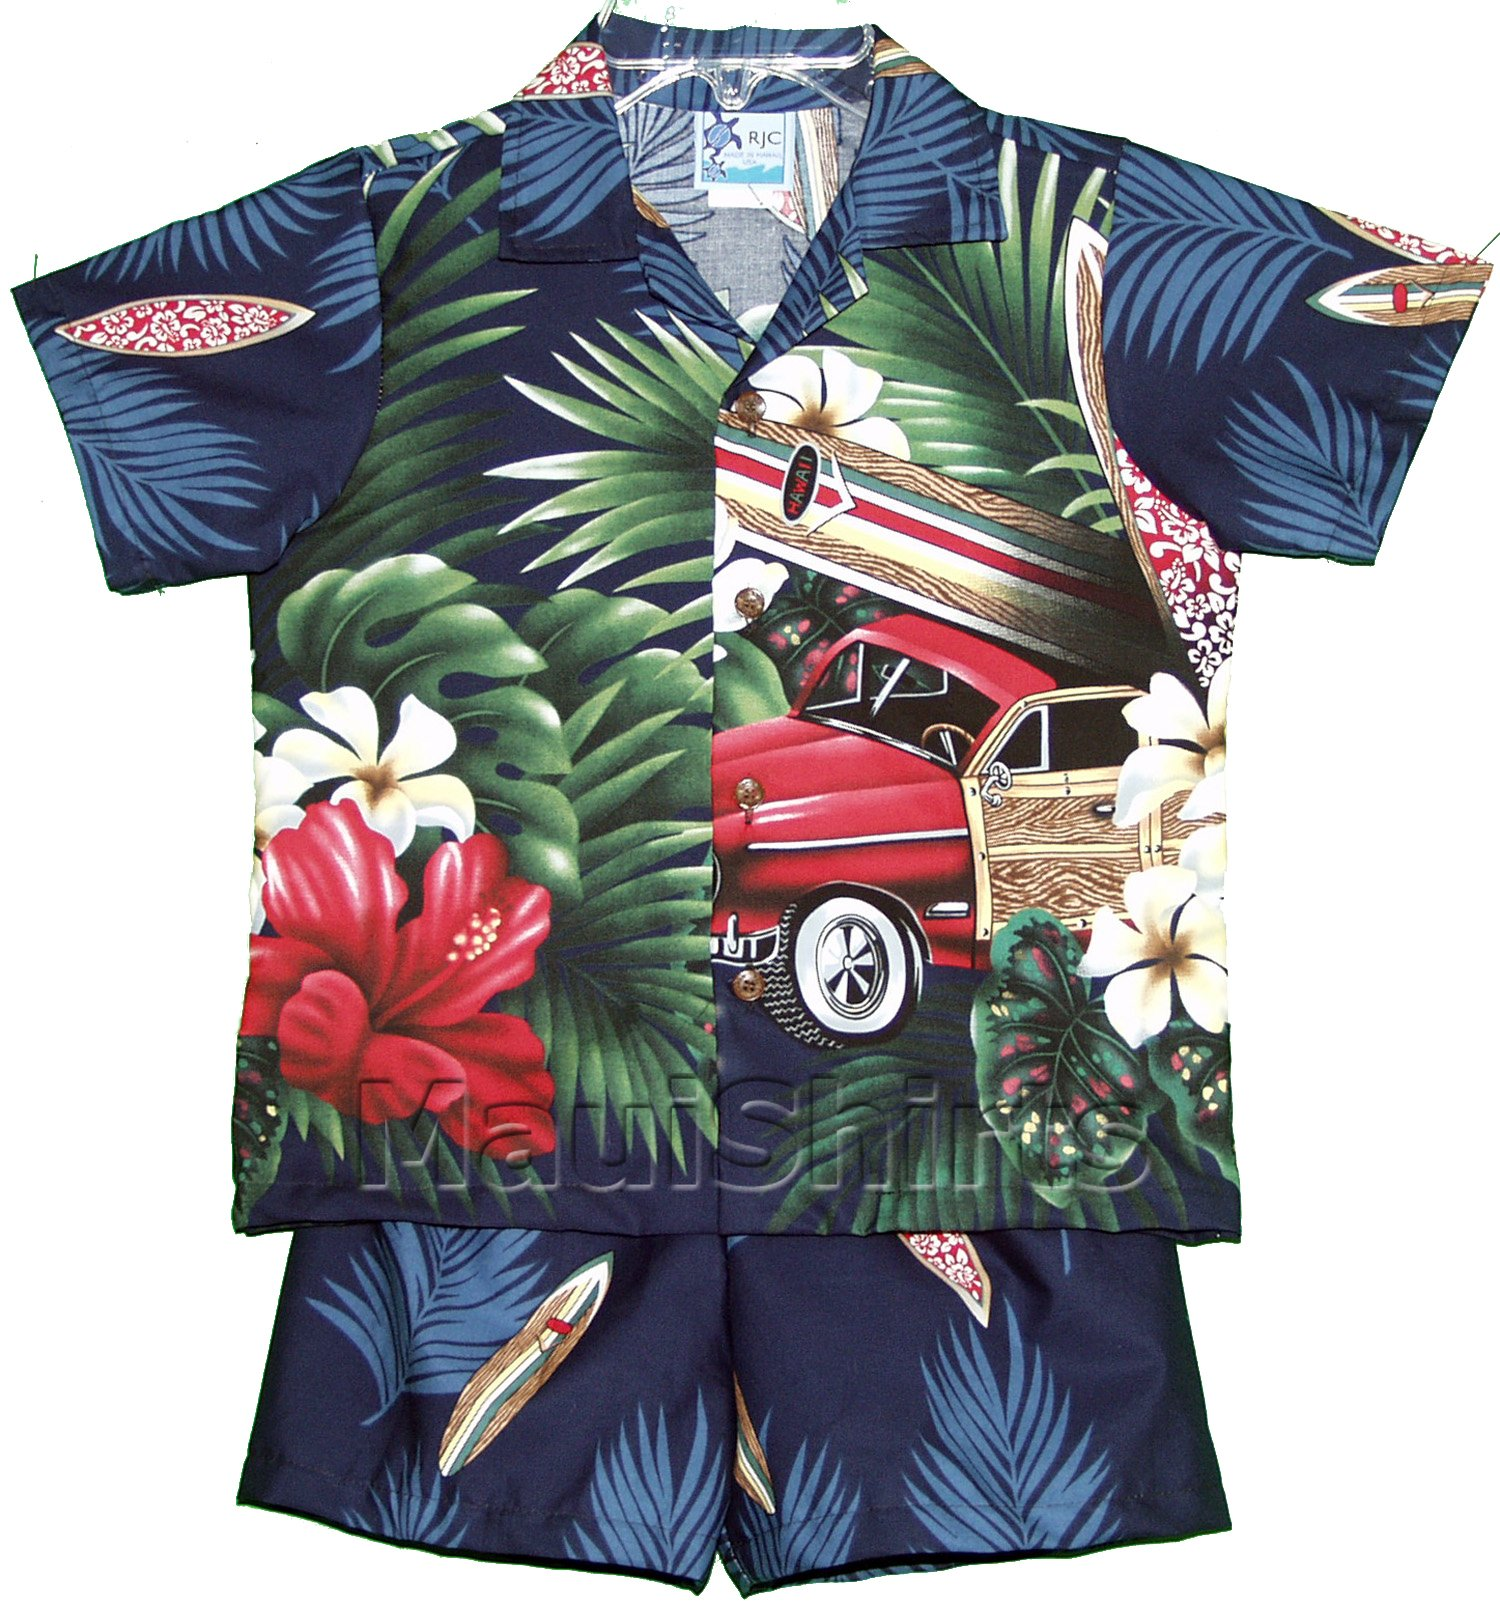 RJC Boys Tropical Surfboard Woodie 2pc Set in Navy Blue - 5T